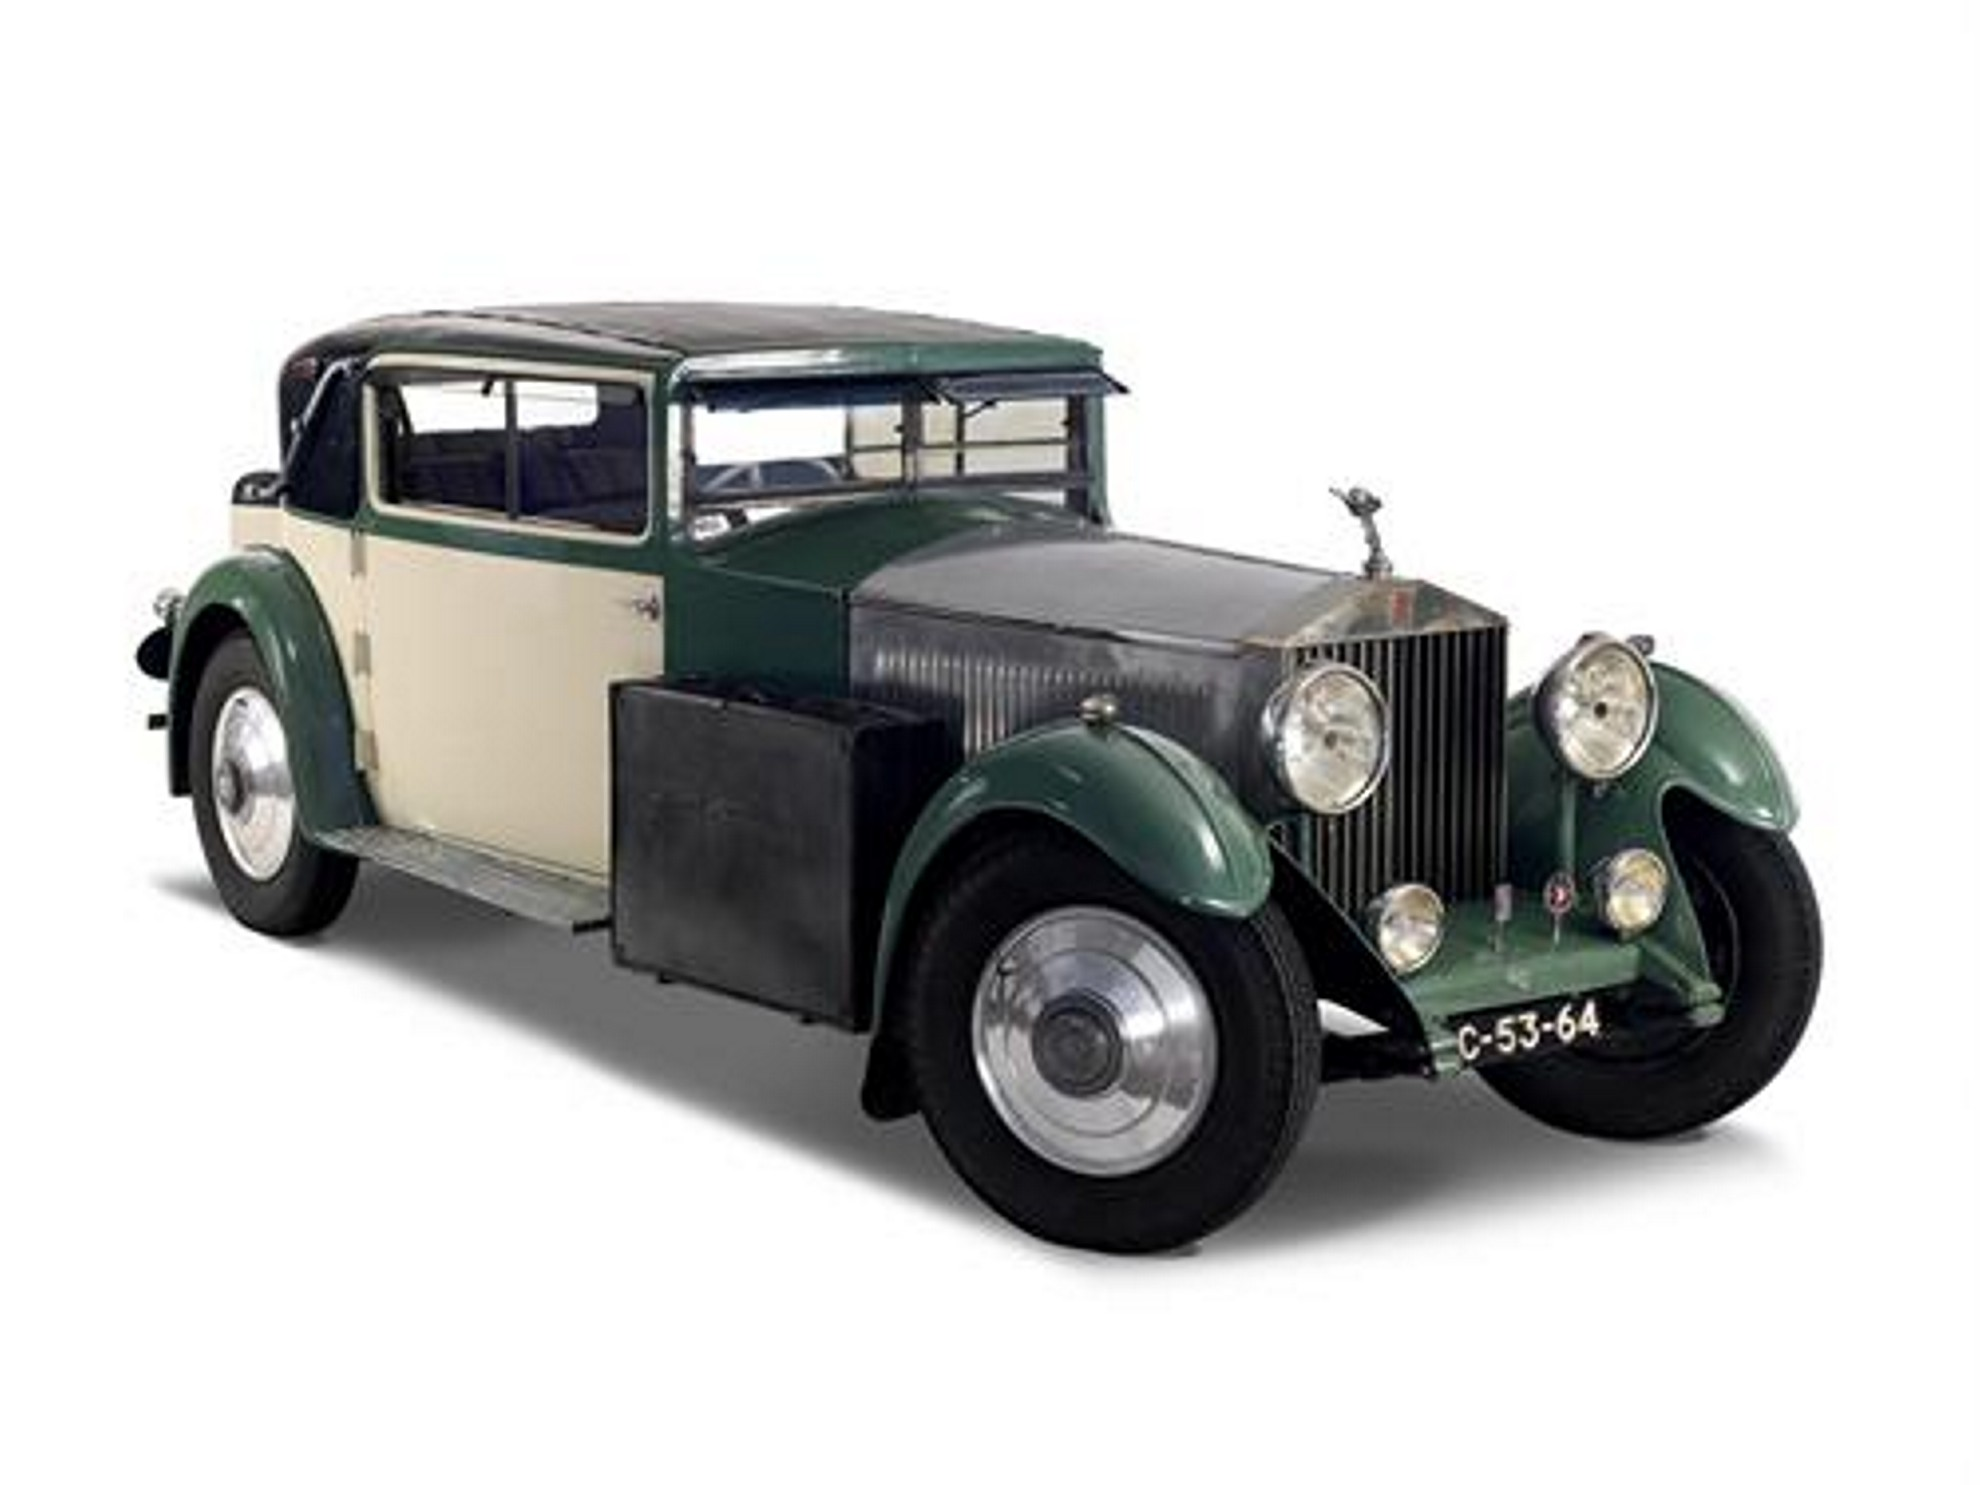 The 1932 Rolls Royce Phantom II